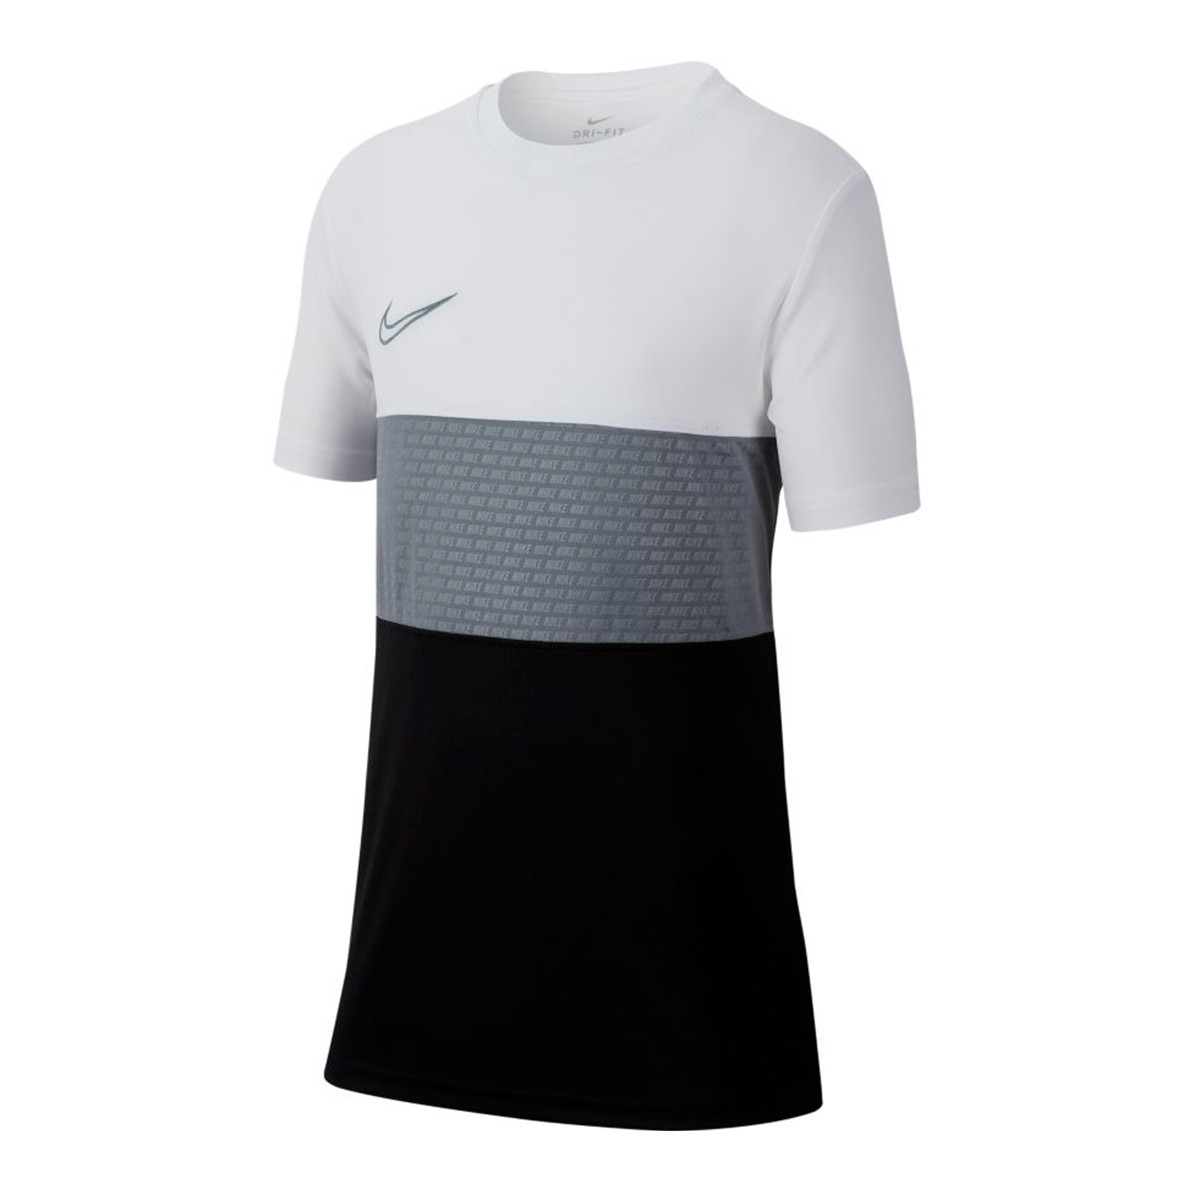 00a476310 Jersey Nike Kids Dri-FIT Academy White-Black-Cool grey - Leaked soccer